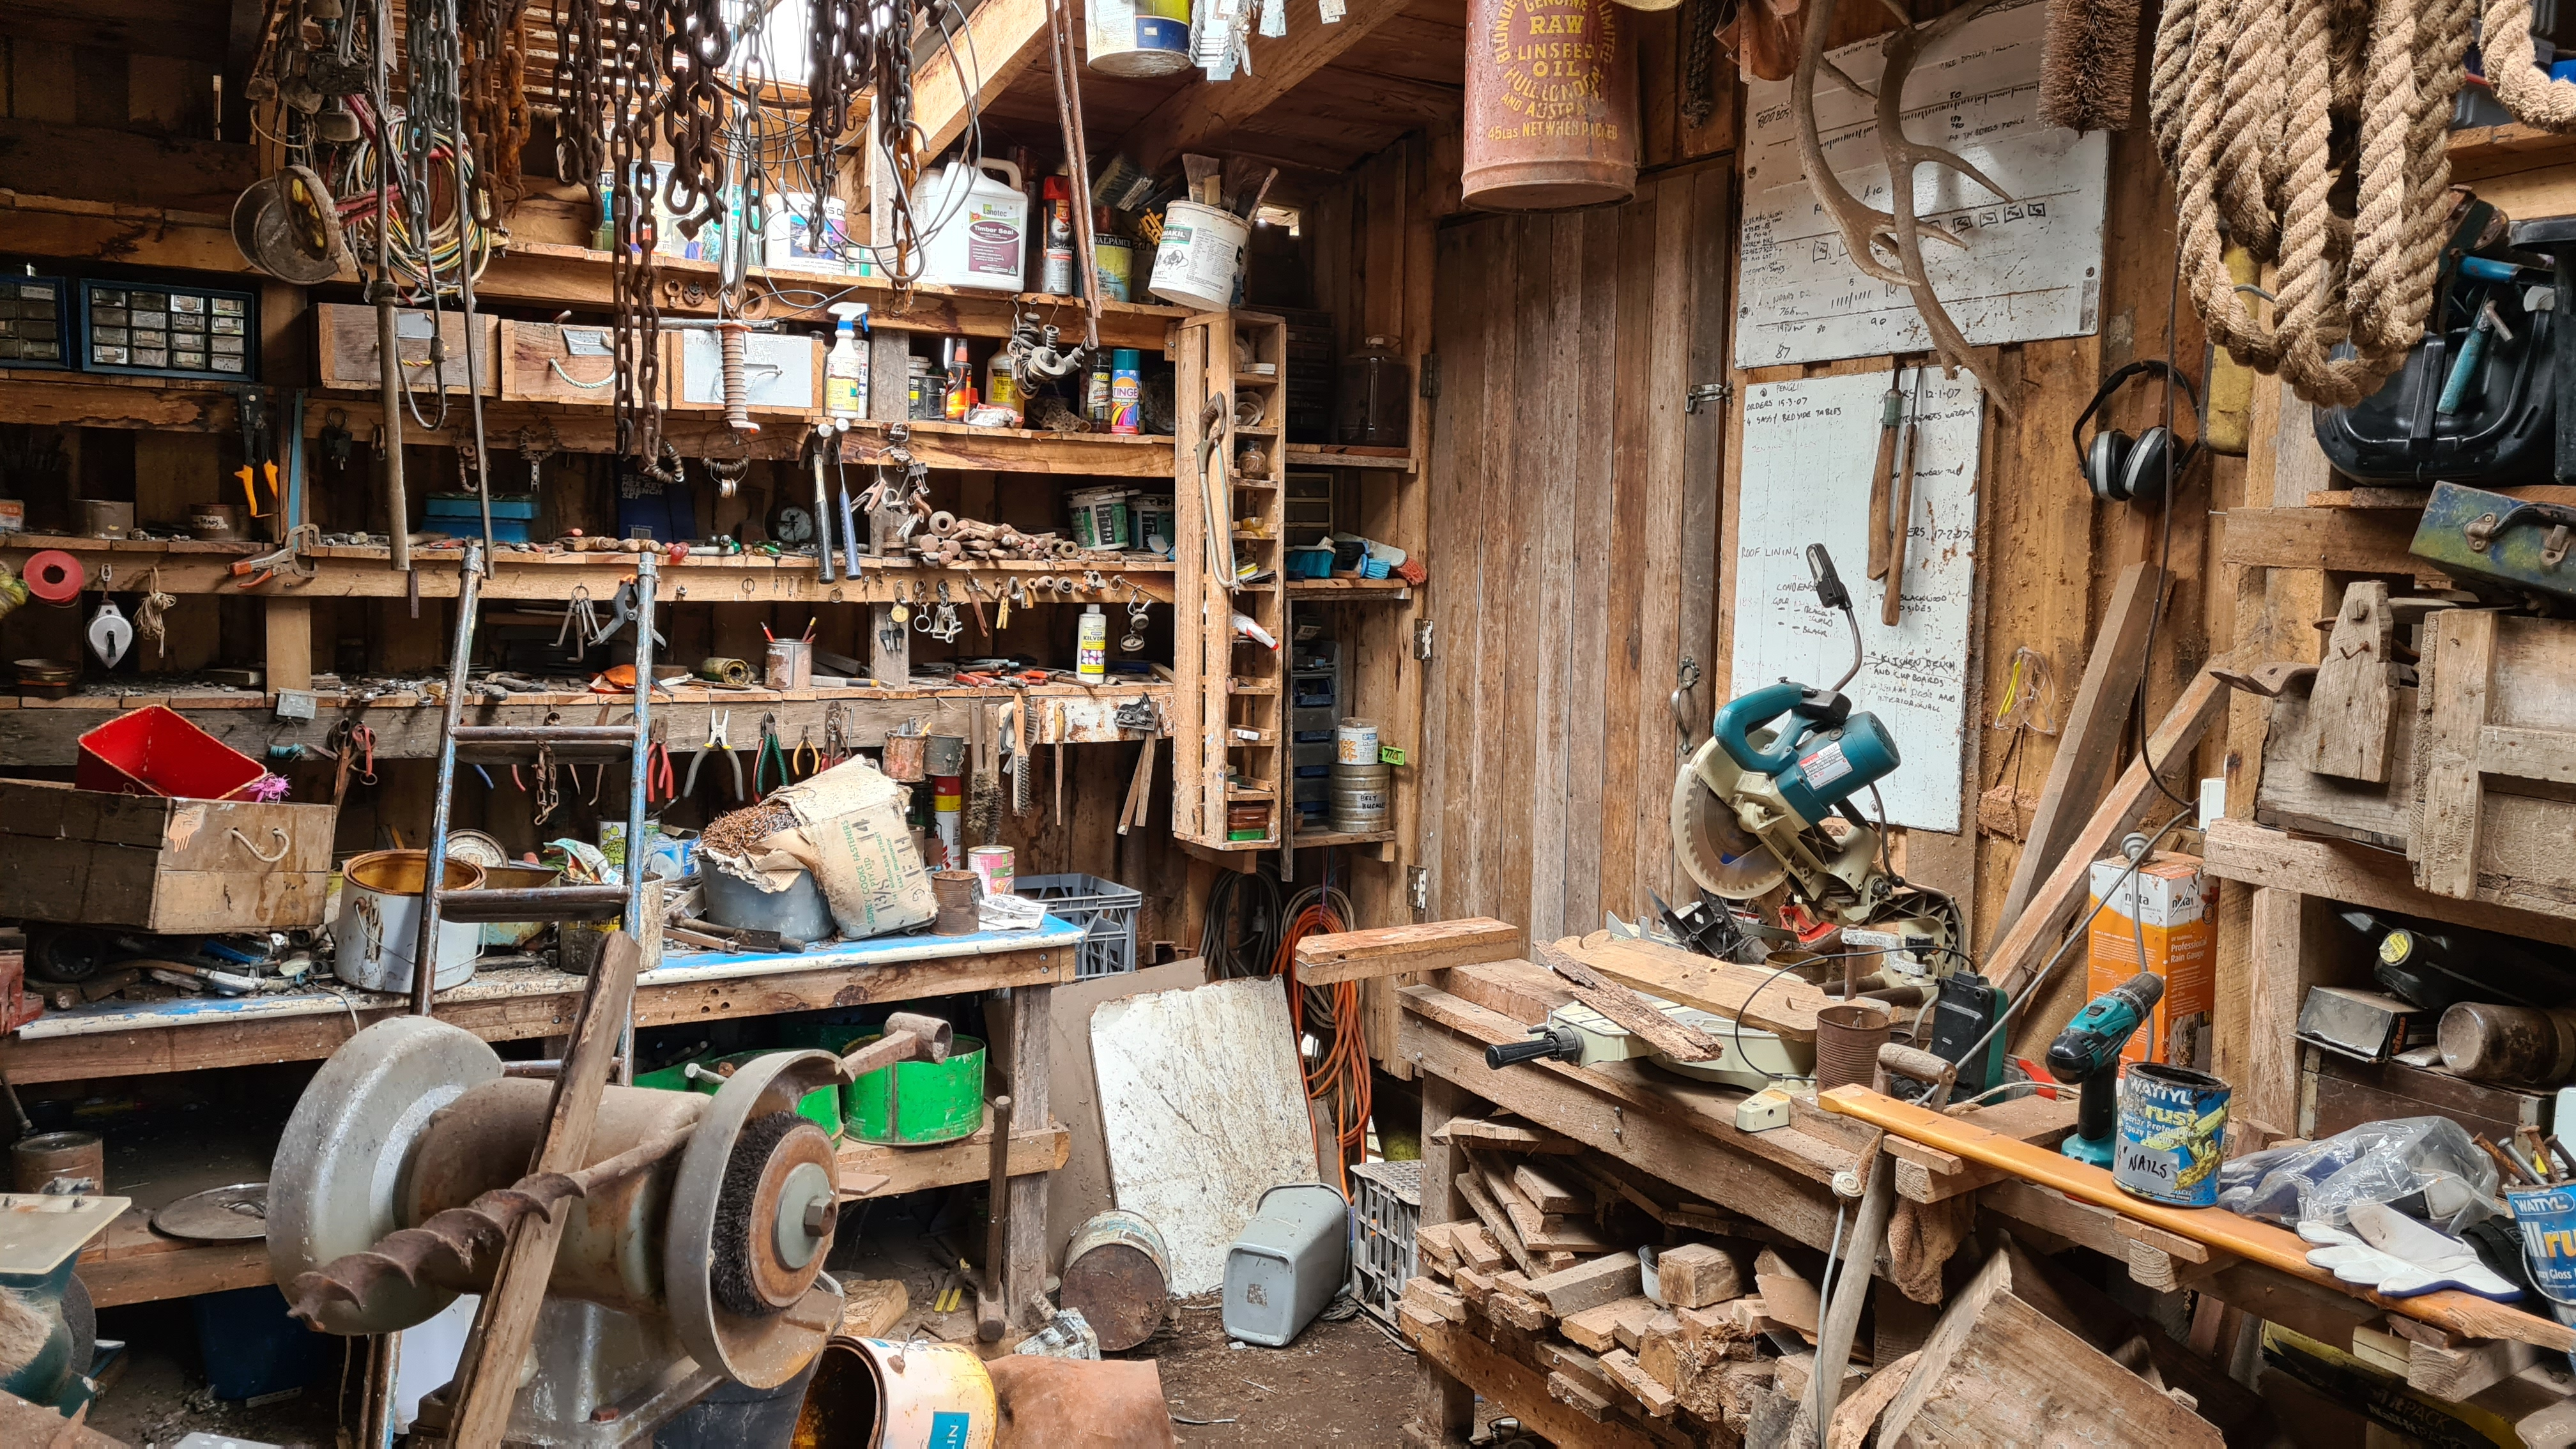 Workshop shed with tools